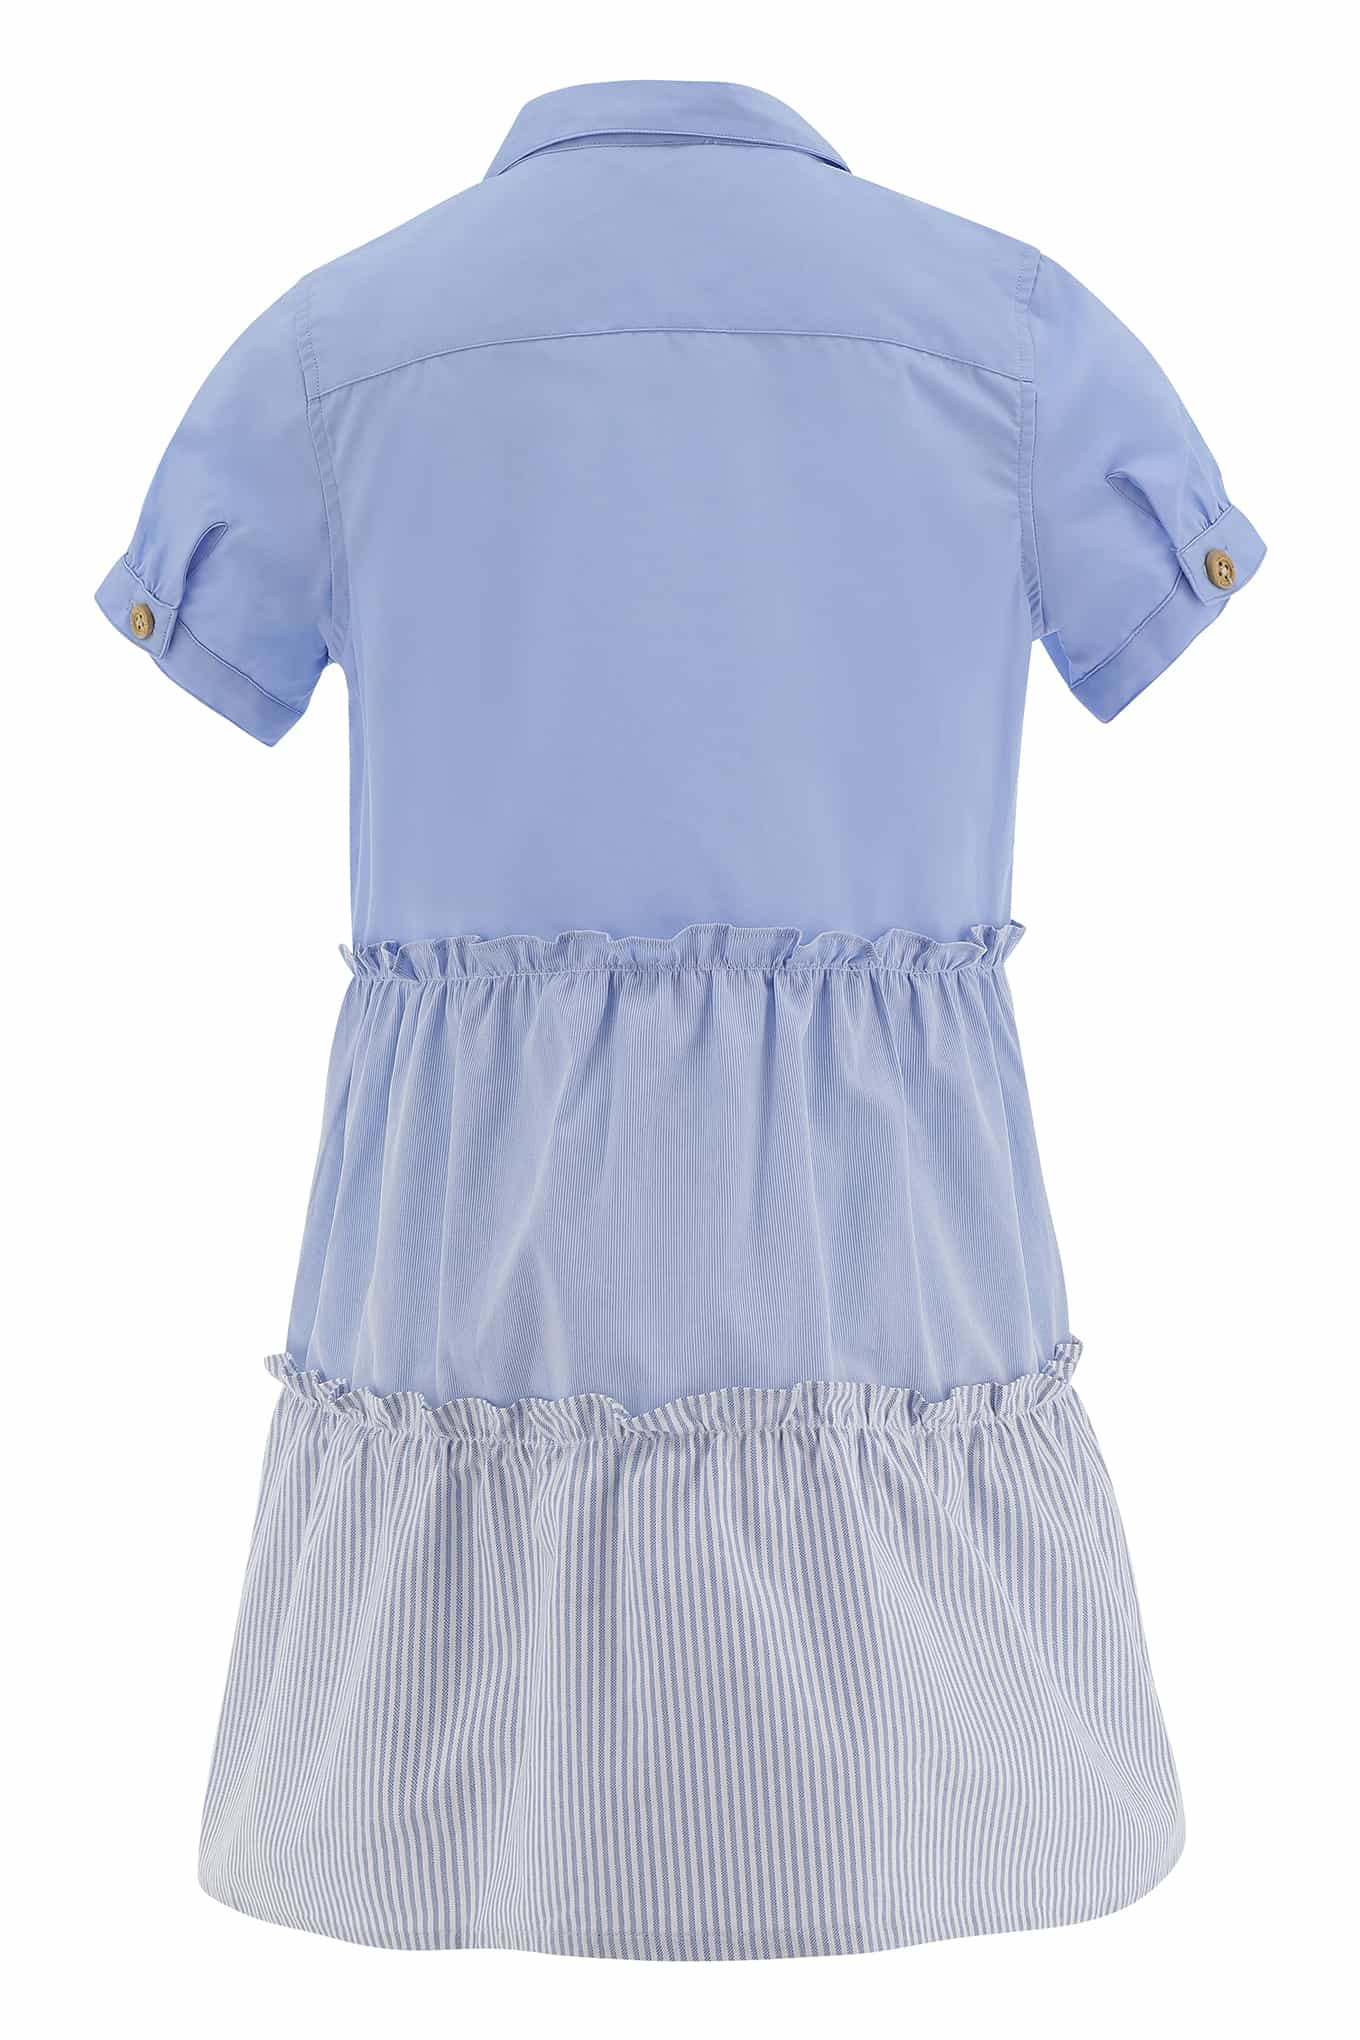 Shirt Dress Light Blue Casual Girl